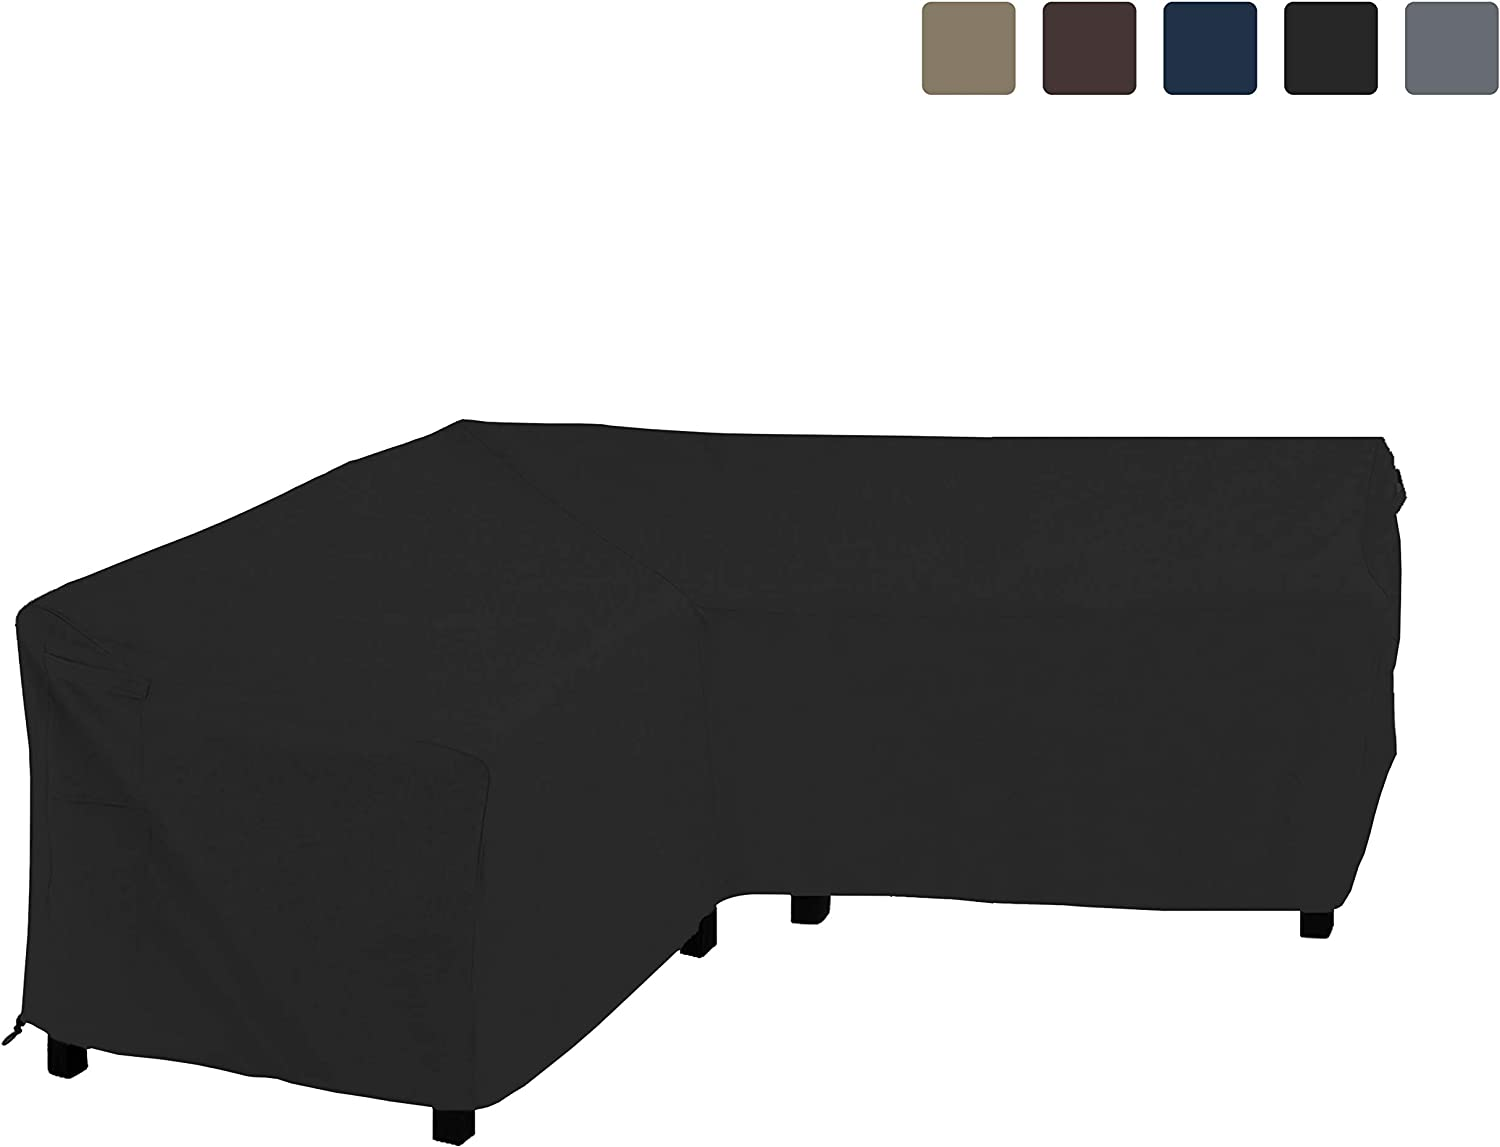 COVERS ALL Patio Sectional Sofa Cover 12 Oz Waterproof – 100 UV Weather Resistant PVC Coated 80 x 80 x 35 D x 33 H – L Shape Sofa Cover for Indoor Outdoor V Shape Sofa, Black